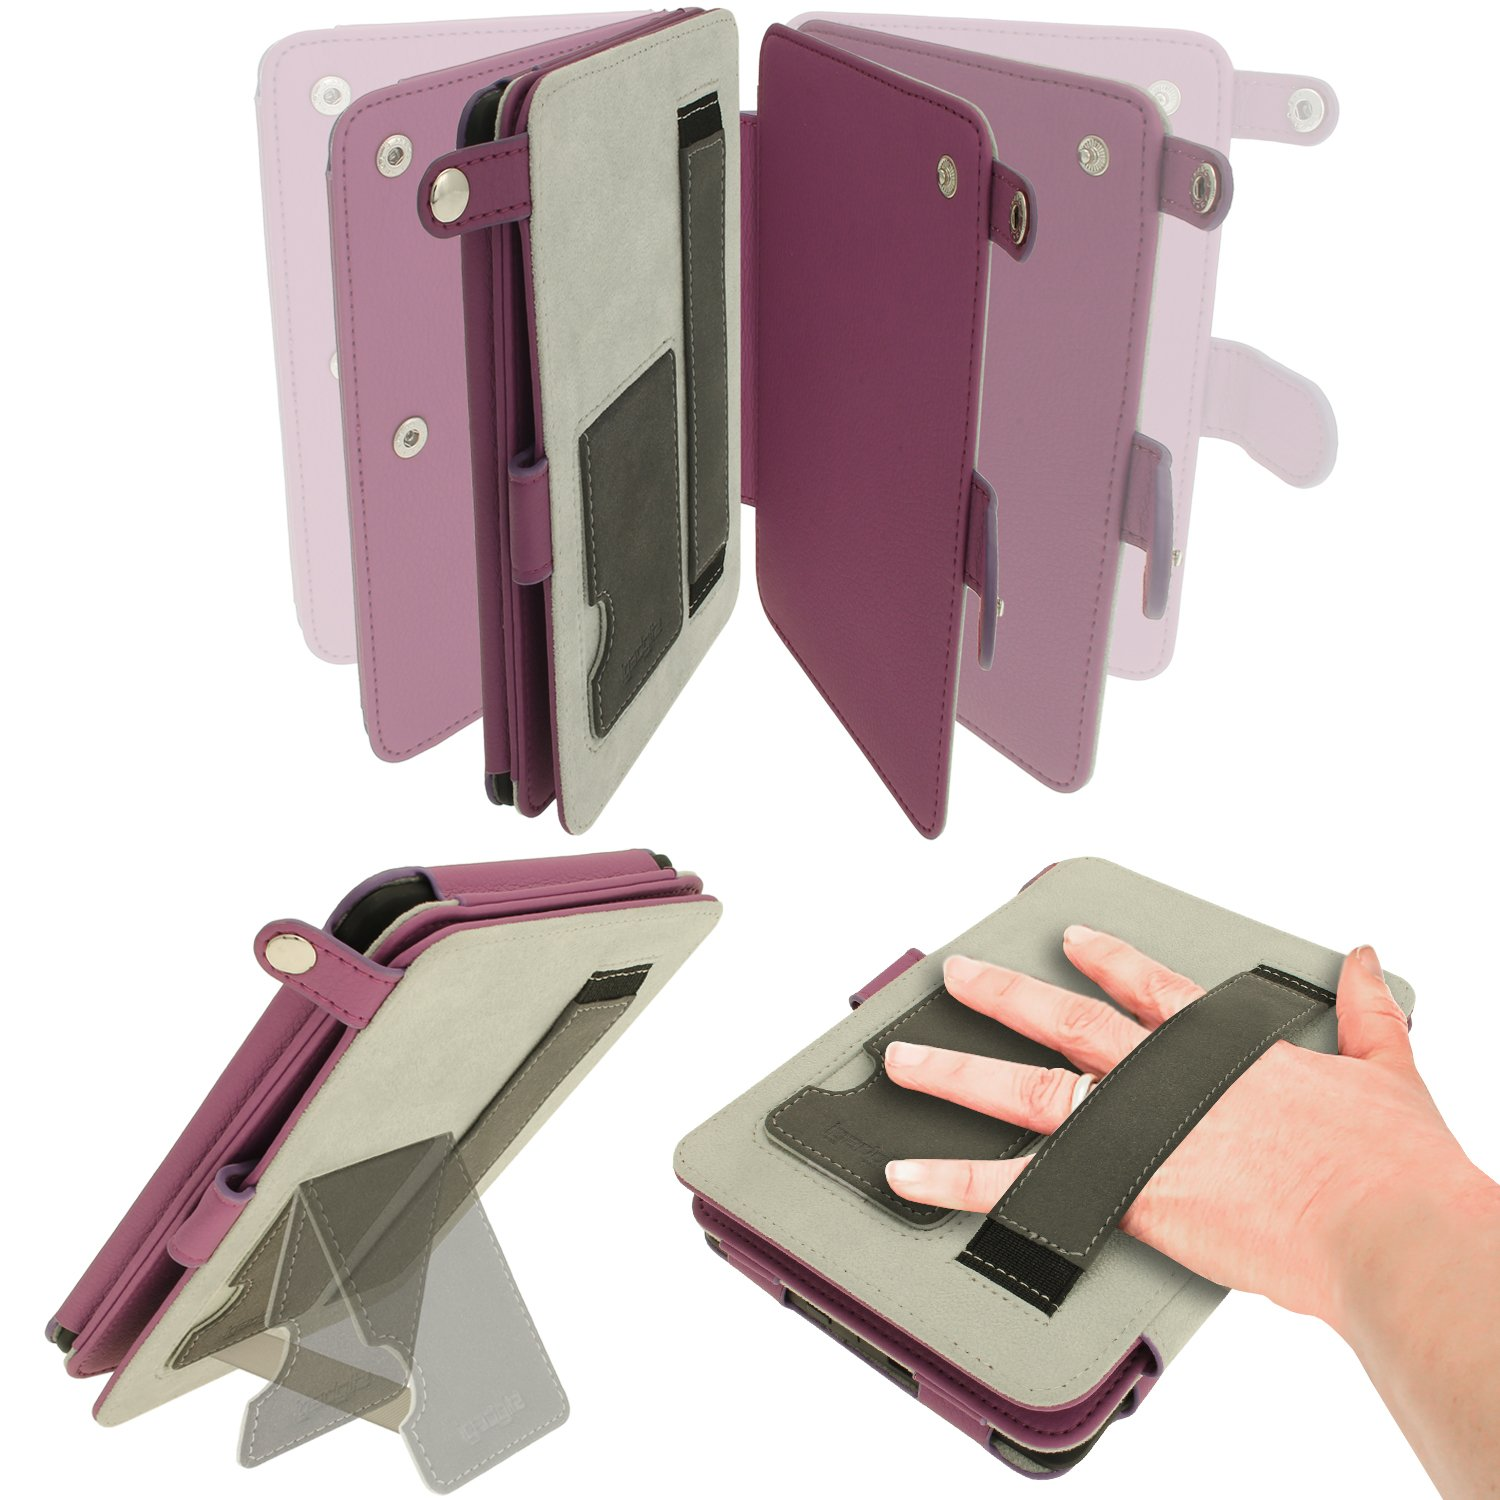 iGadgitz Purple PU 'Bi-View' Leather Case Cover for Amazon Kindle Paperwhite 2015 2014 2013 2012 With Sleep/Wake Function & Integrated Hand Strap by igadgitz (Image #5)